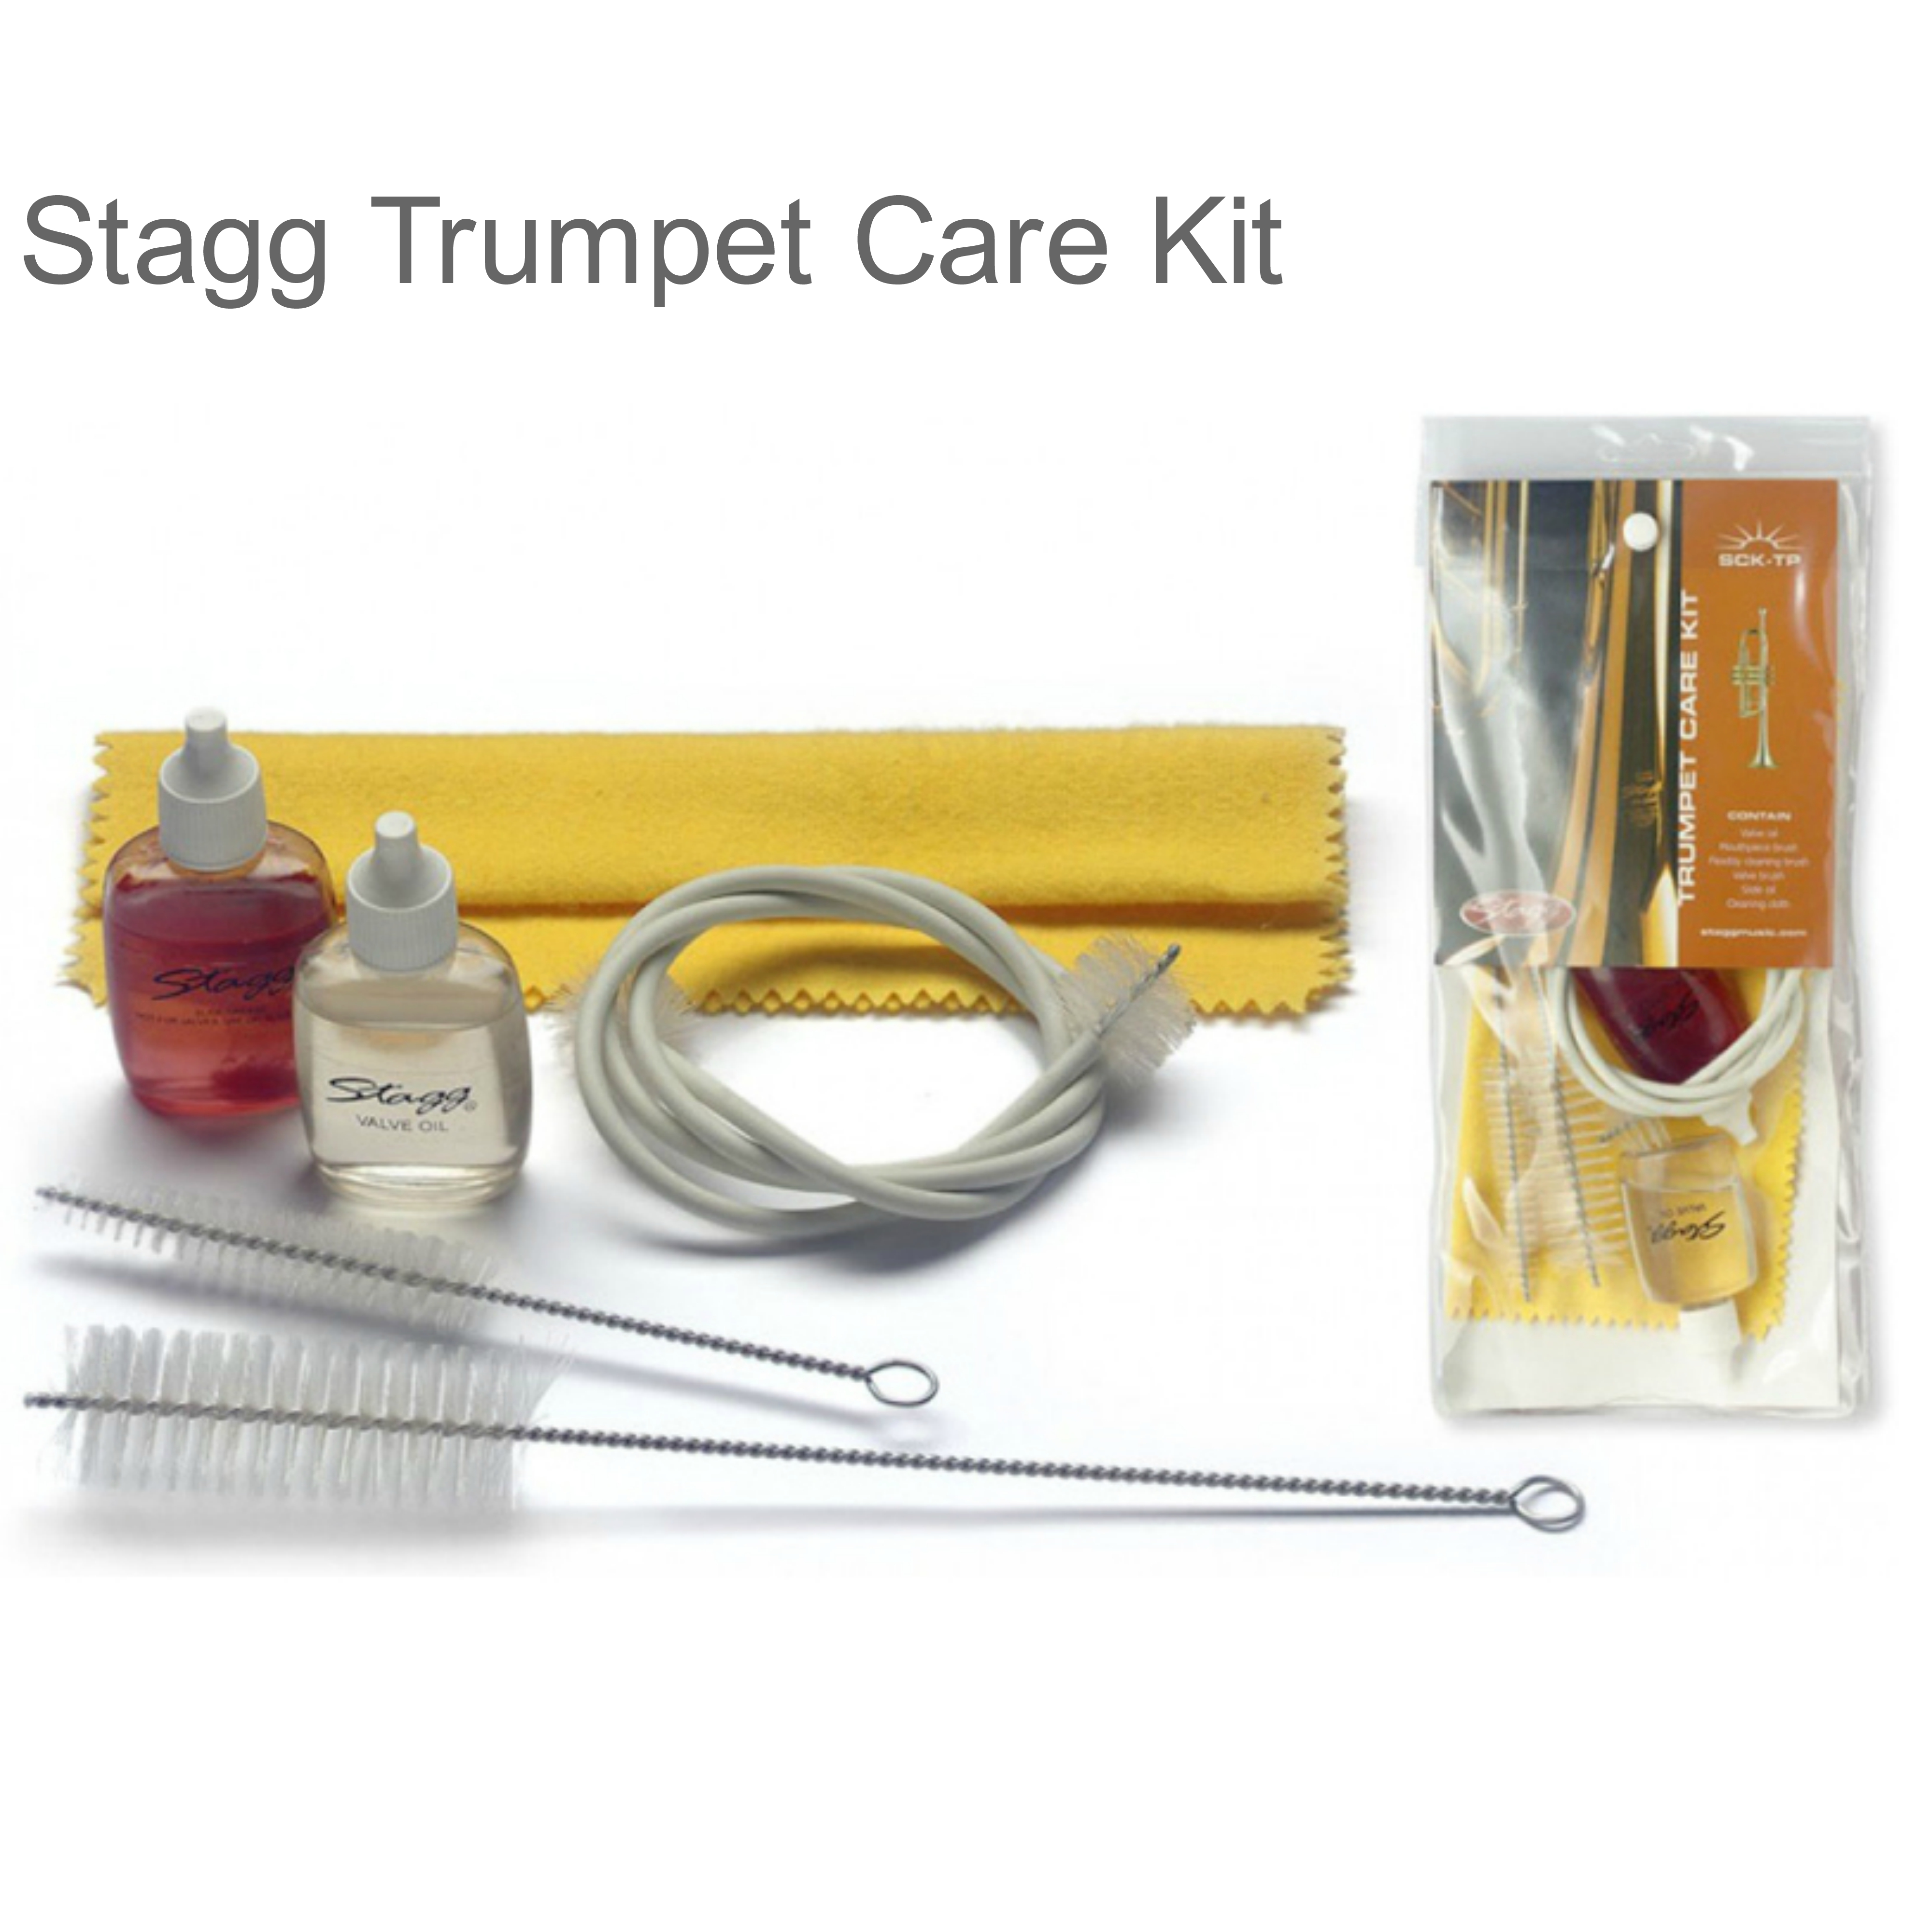 Stagg Trumpet Care Kit Set | Valve Oil-Mouthpiece Brush-Cleaning Cloth | SCKTP | NEW